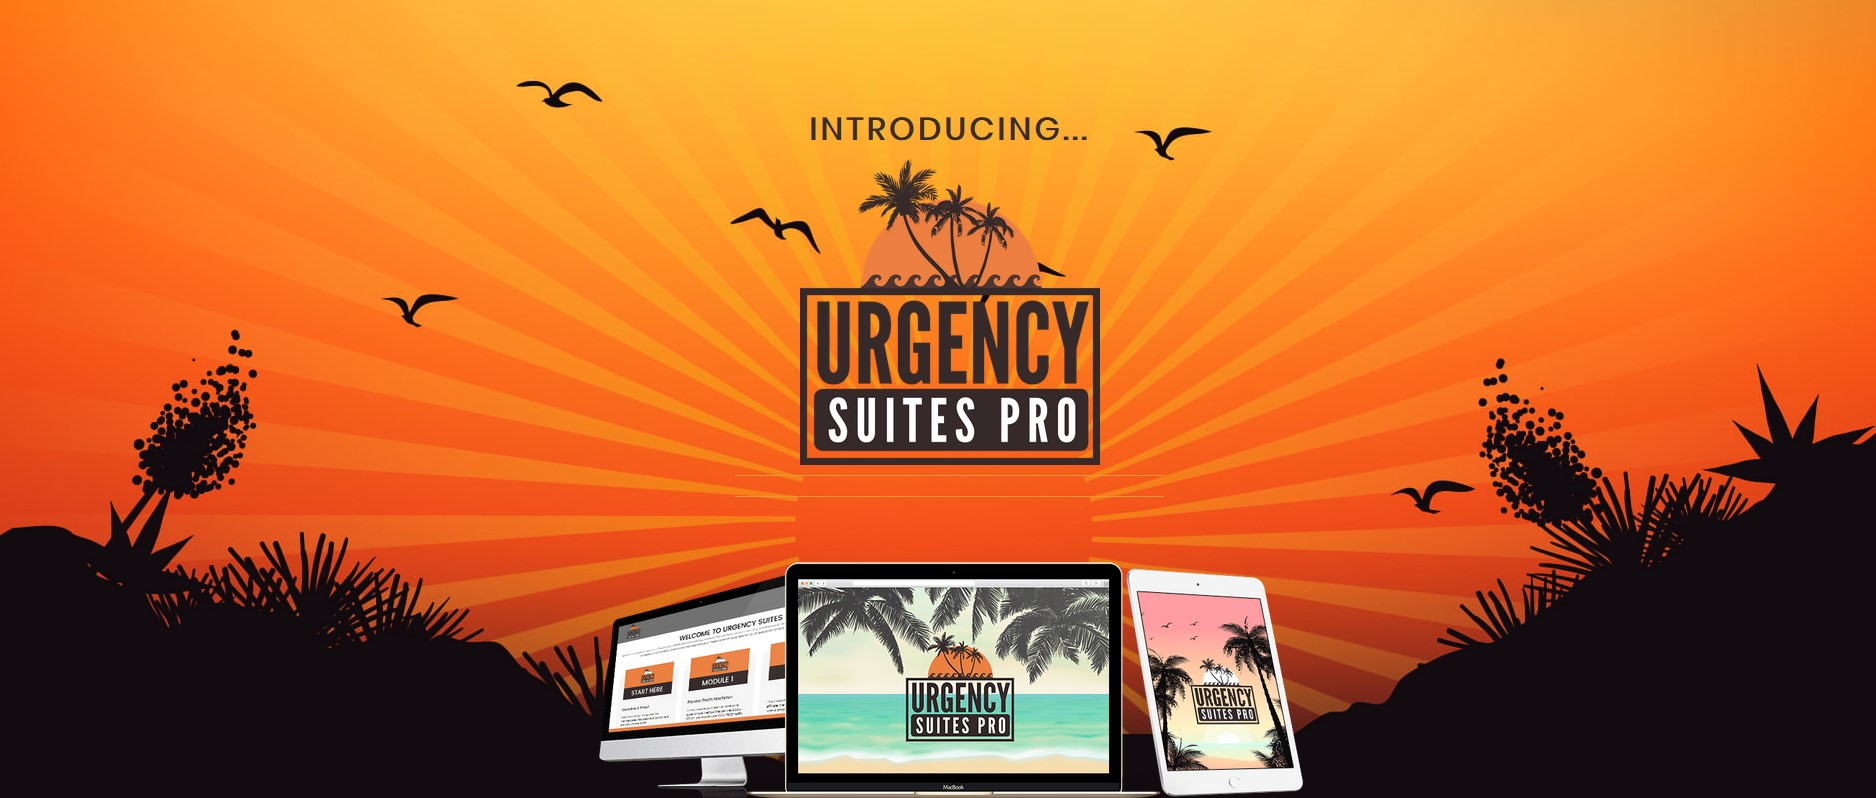 "So We Decided To Create Something Way Better, And Give It To You At A Fraction Of The Price. You Need Urgency, But You Deserve Better … You Deserve Urgency Suites Pro We Show You EXACTLY How to Use Urgency To Multiply Your Results... Inside we show you EXACTLY how we use this same software to generate over $50,000 dollars a month each. Anyone can take our exact blueprint with Urgency Suites pro to Multiply their results without ANY additional work. Plus, this software is truly a something ANYONE can use to get FAST result even if you never made a dollar online. This method banks us up to $30,000 in a single day. If you're looking for a way to literally multiply your results while working less. You have to see ""Urgency Suites Pro"". The One Flaw of Most Wannabe Entrepreneurs… The one missing ingredient for most ""wannabe entrepreneurs"" is urgency… Without out it, you are at a massive disadvantage. Most newbies are struggling because:"